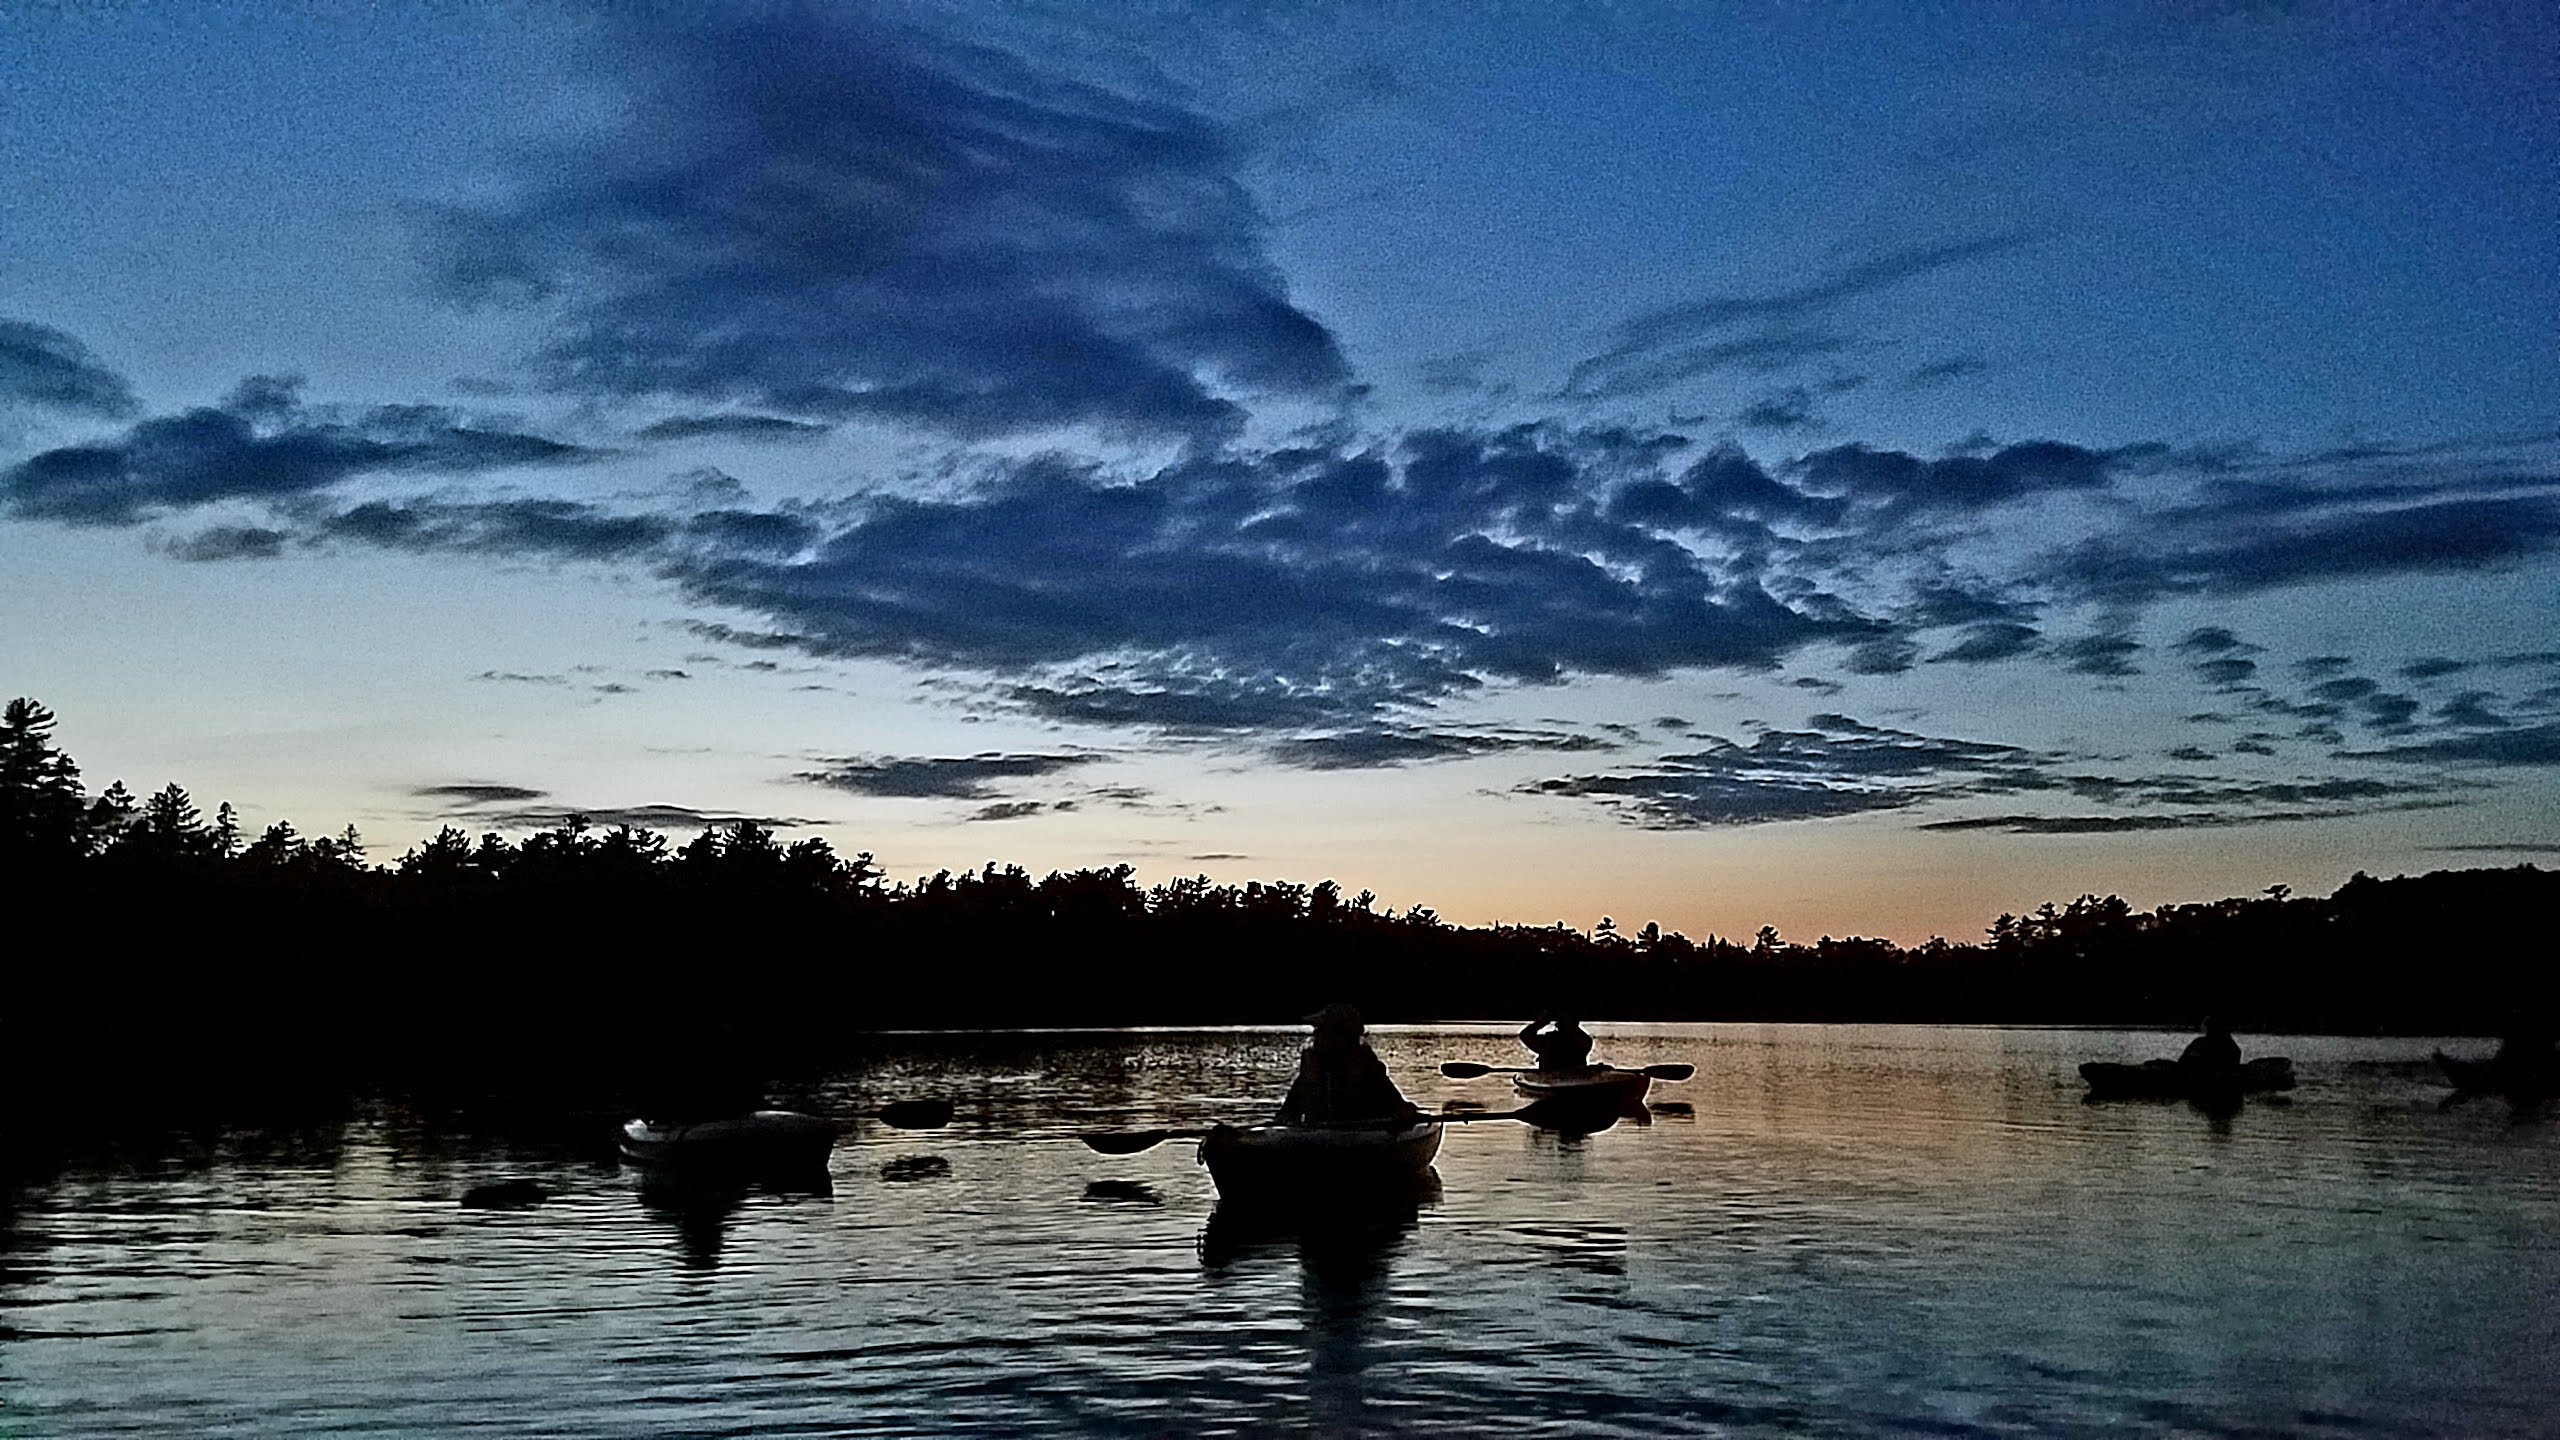 20190815_moonlight-paddle-silhouettes